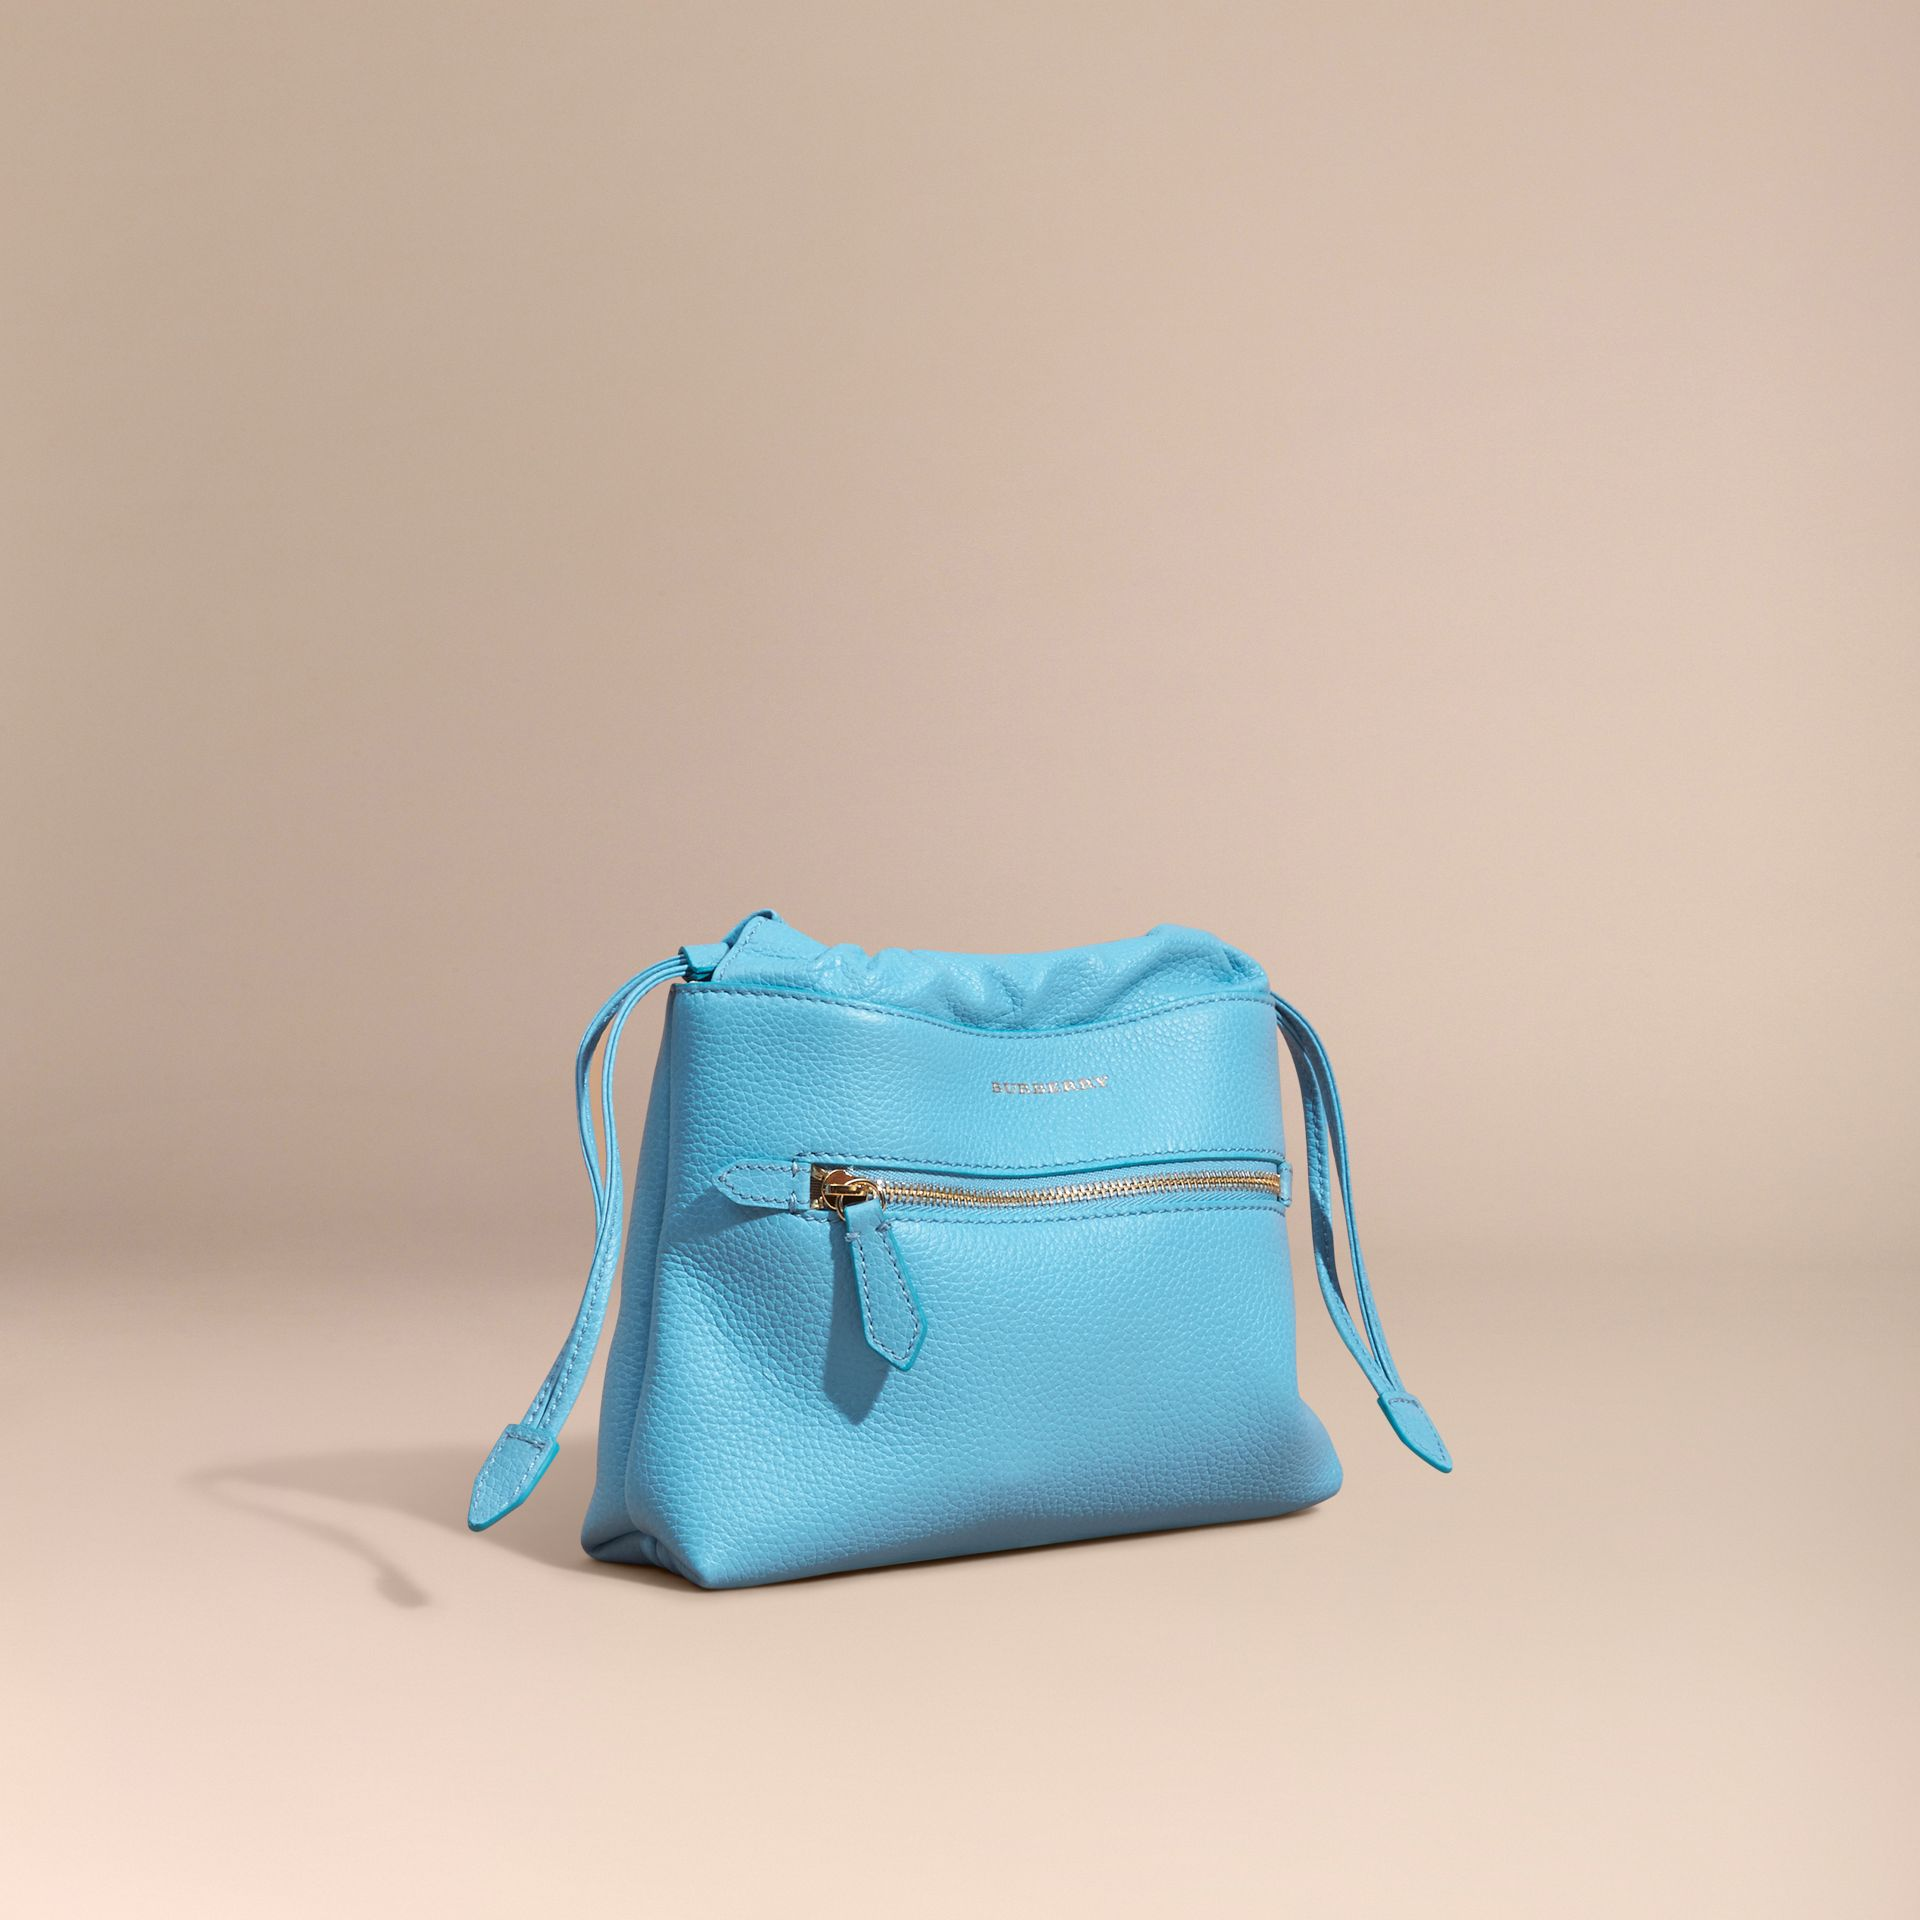 Bright mineral blue The Mini Crush in Grainy Leather Bright Mineral Blue - gallery image 1